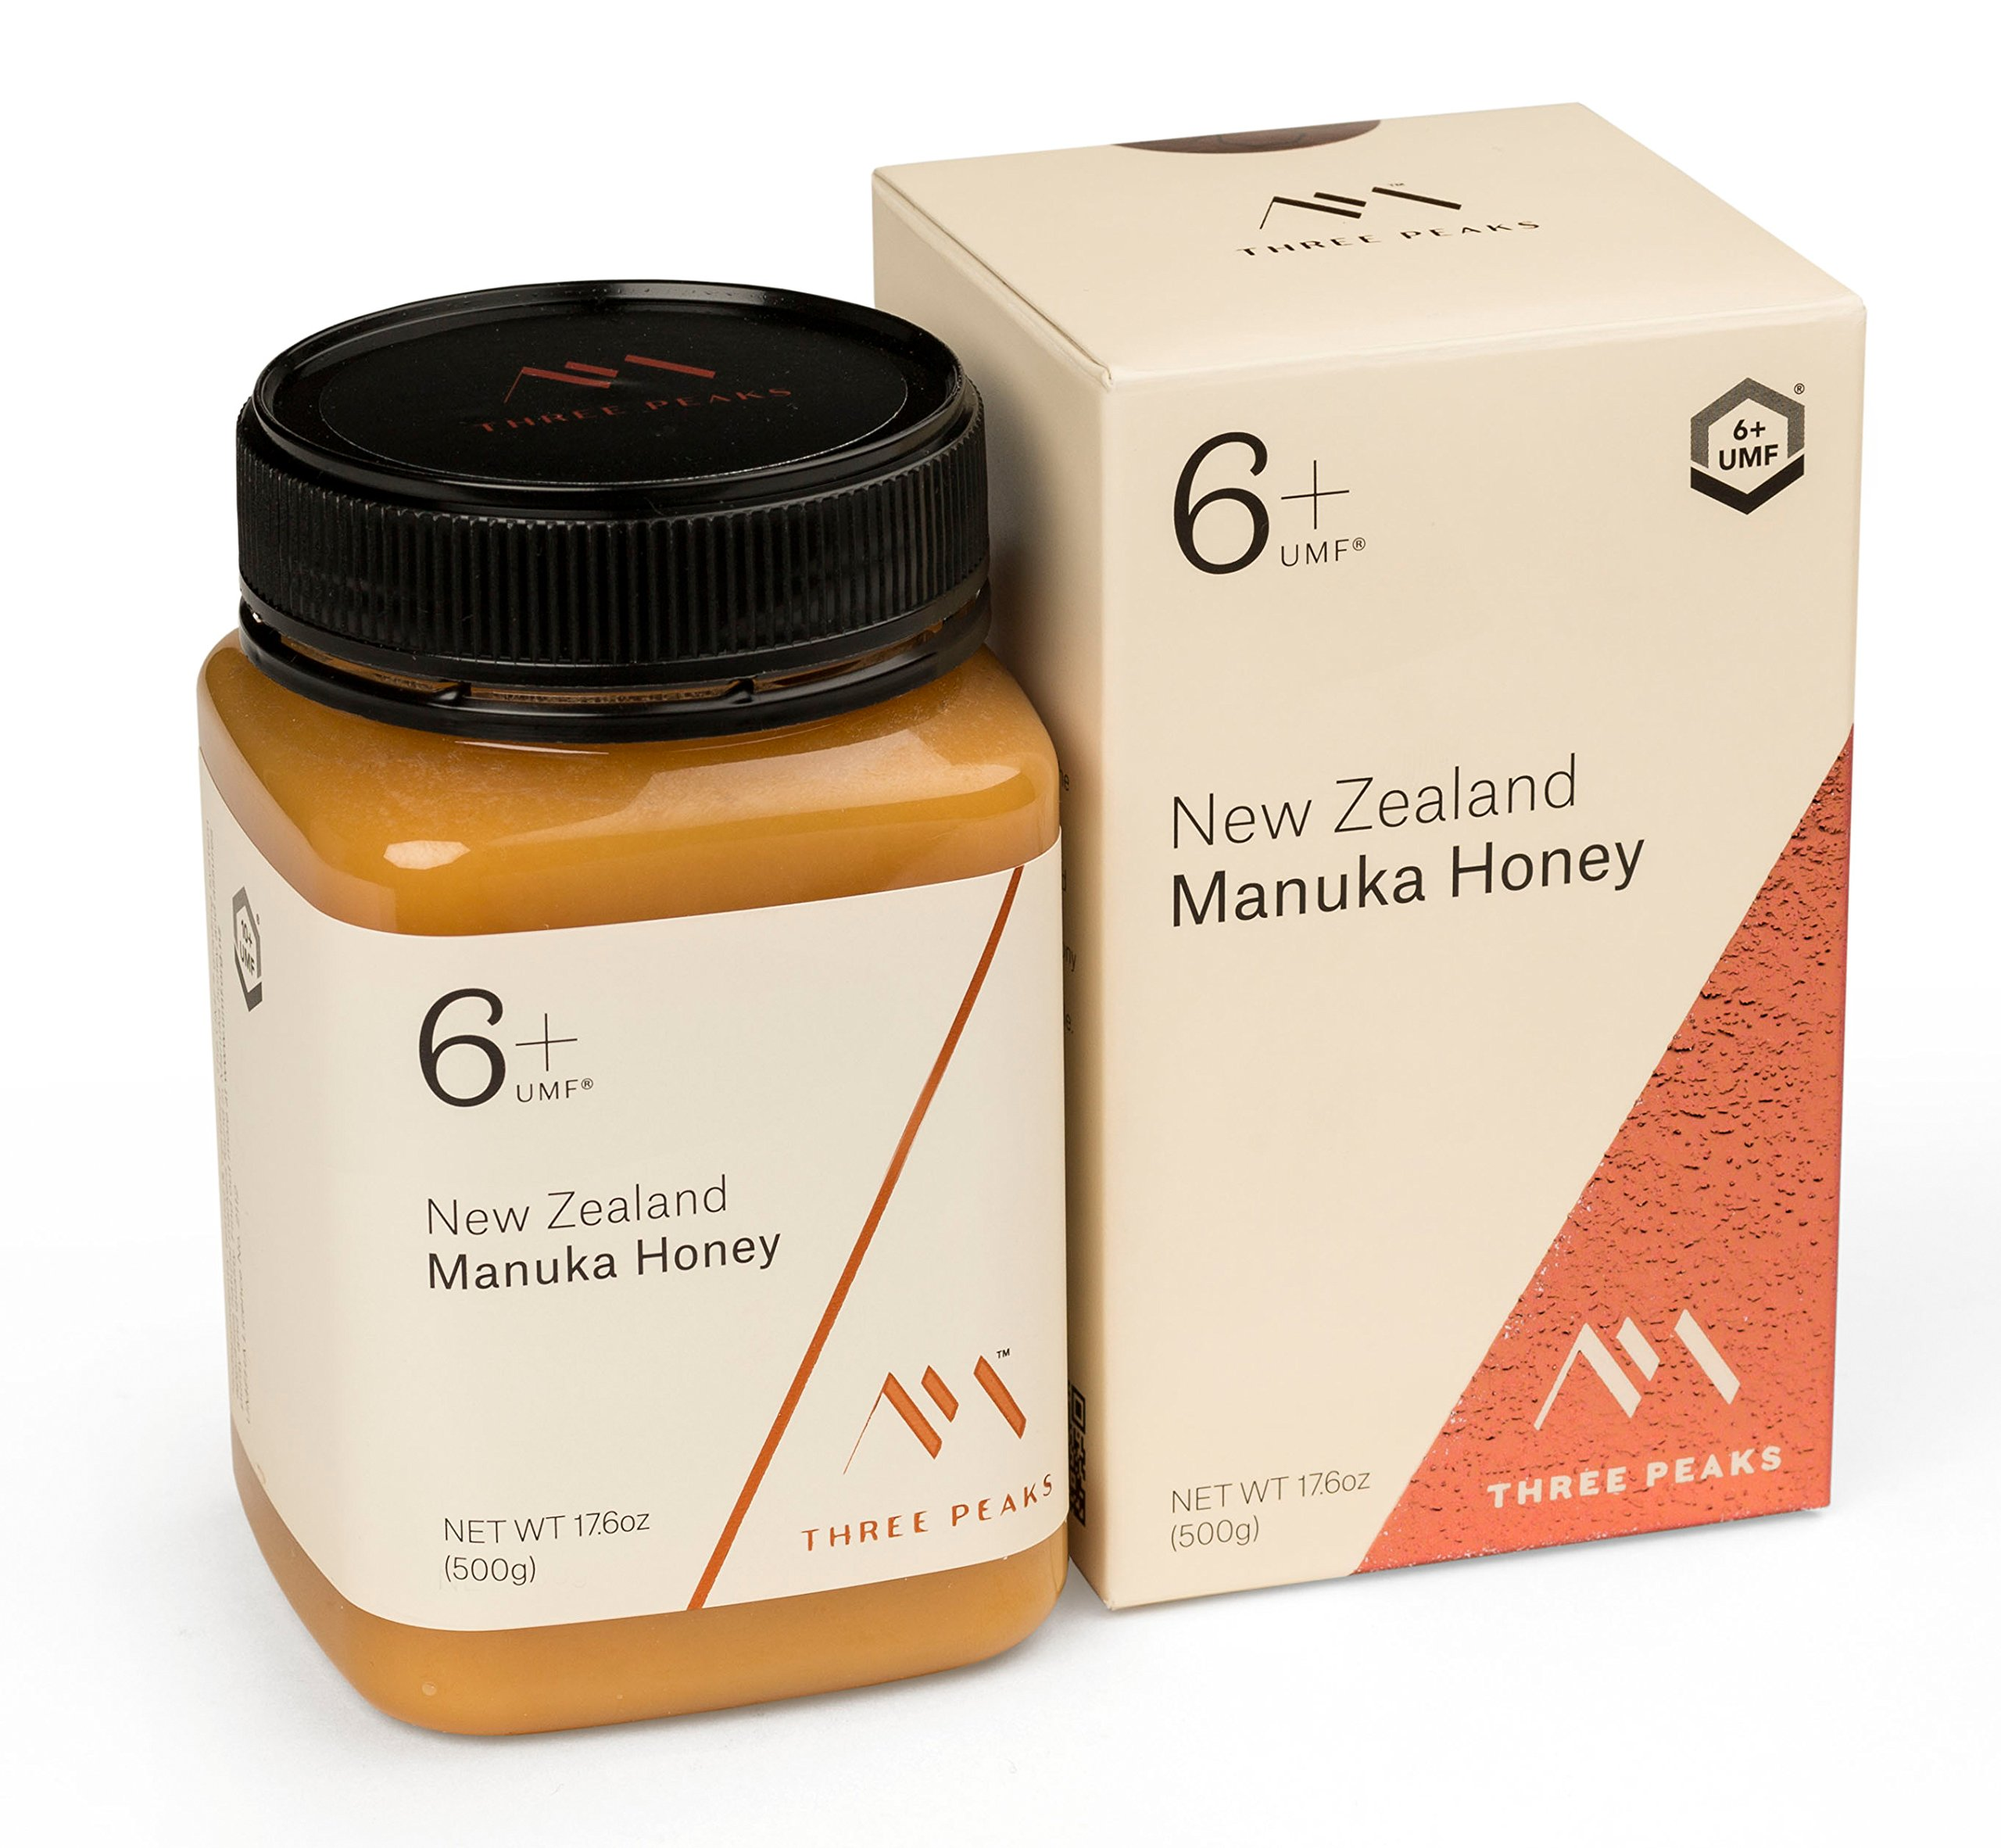 Three Peaks Manuka Honey New Zealand - Certified UMF 6+ - 17.6 oz (500gm) - 100% Natural honey, Raw honey – Ultra Premium, Healing Manuka honey